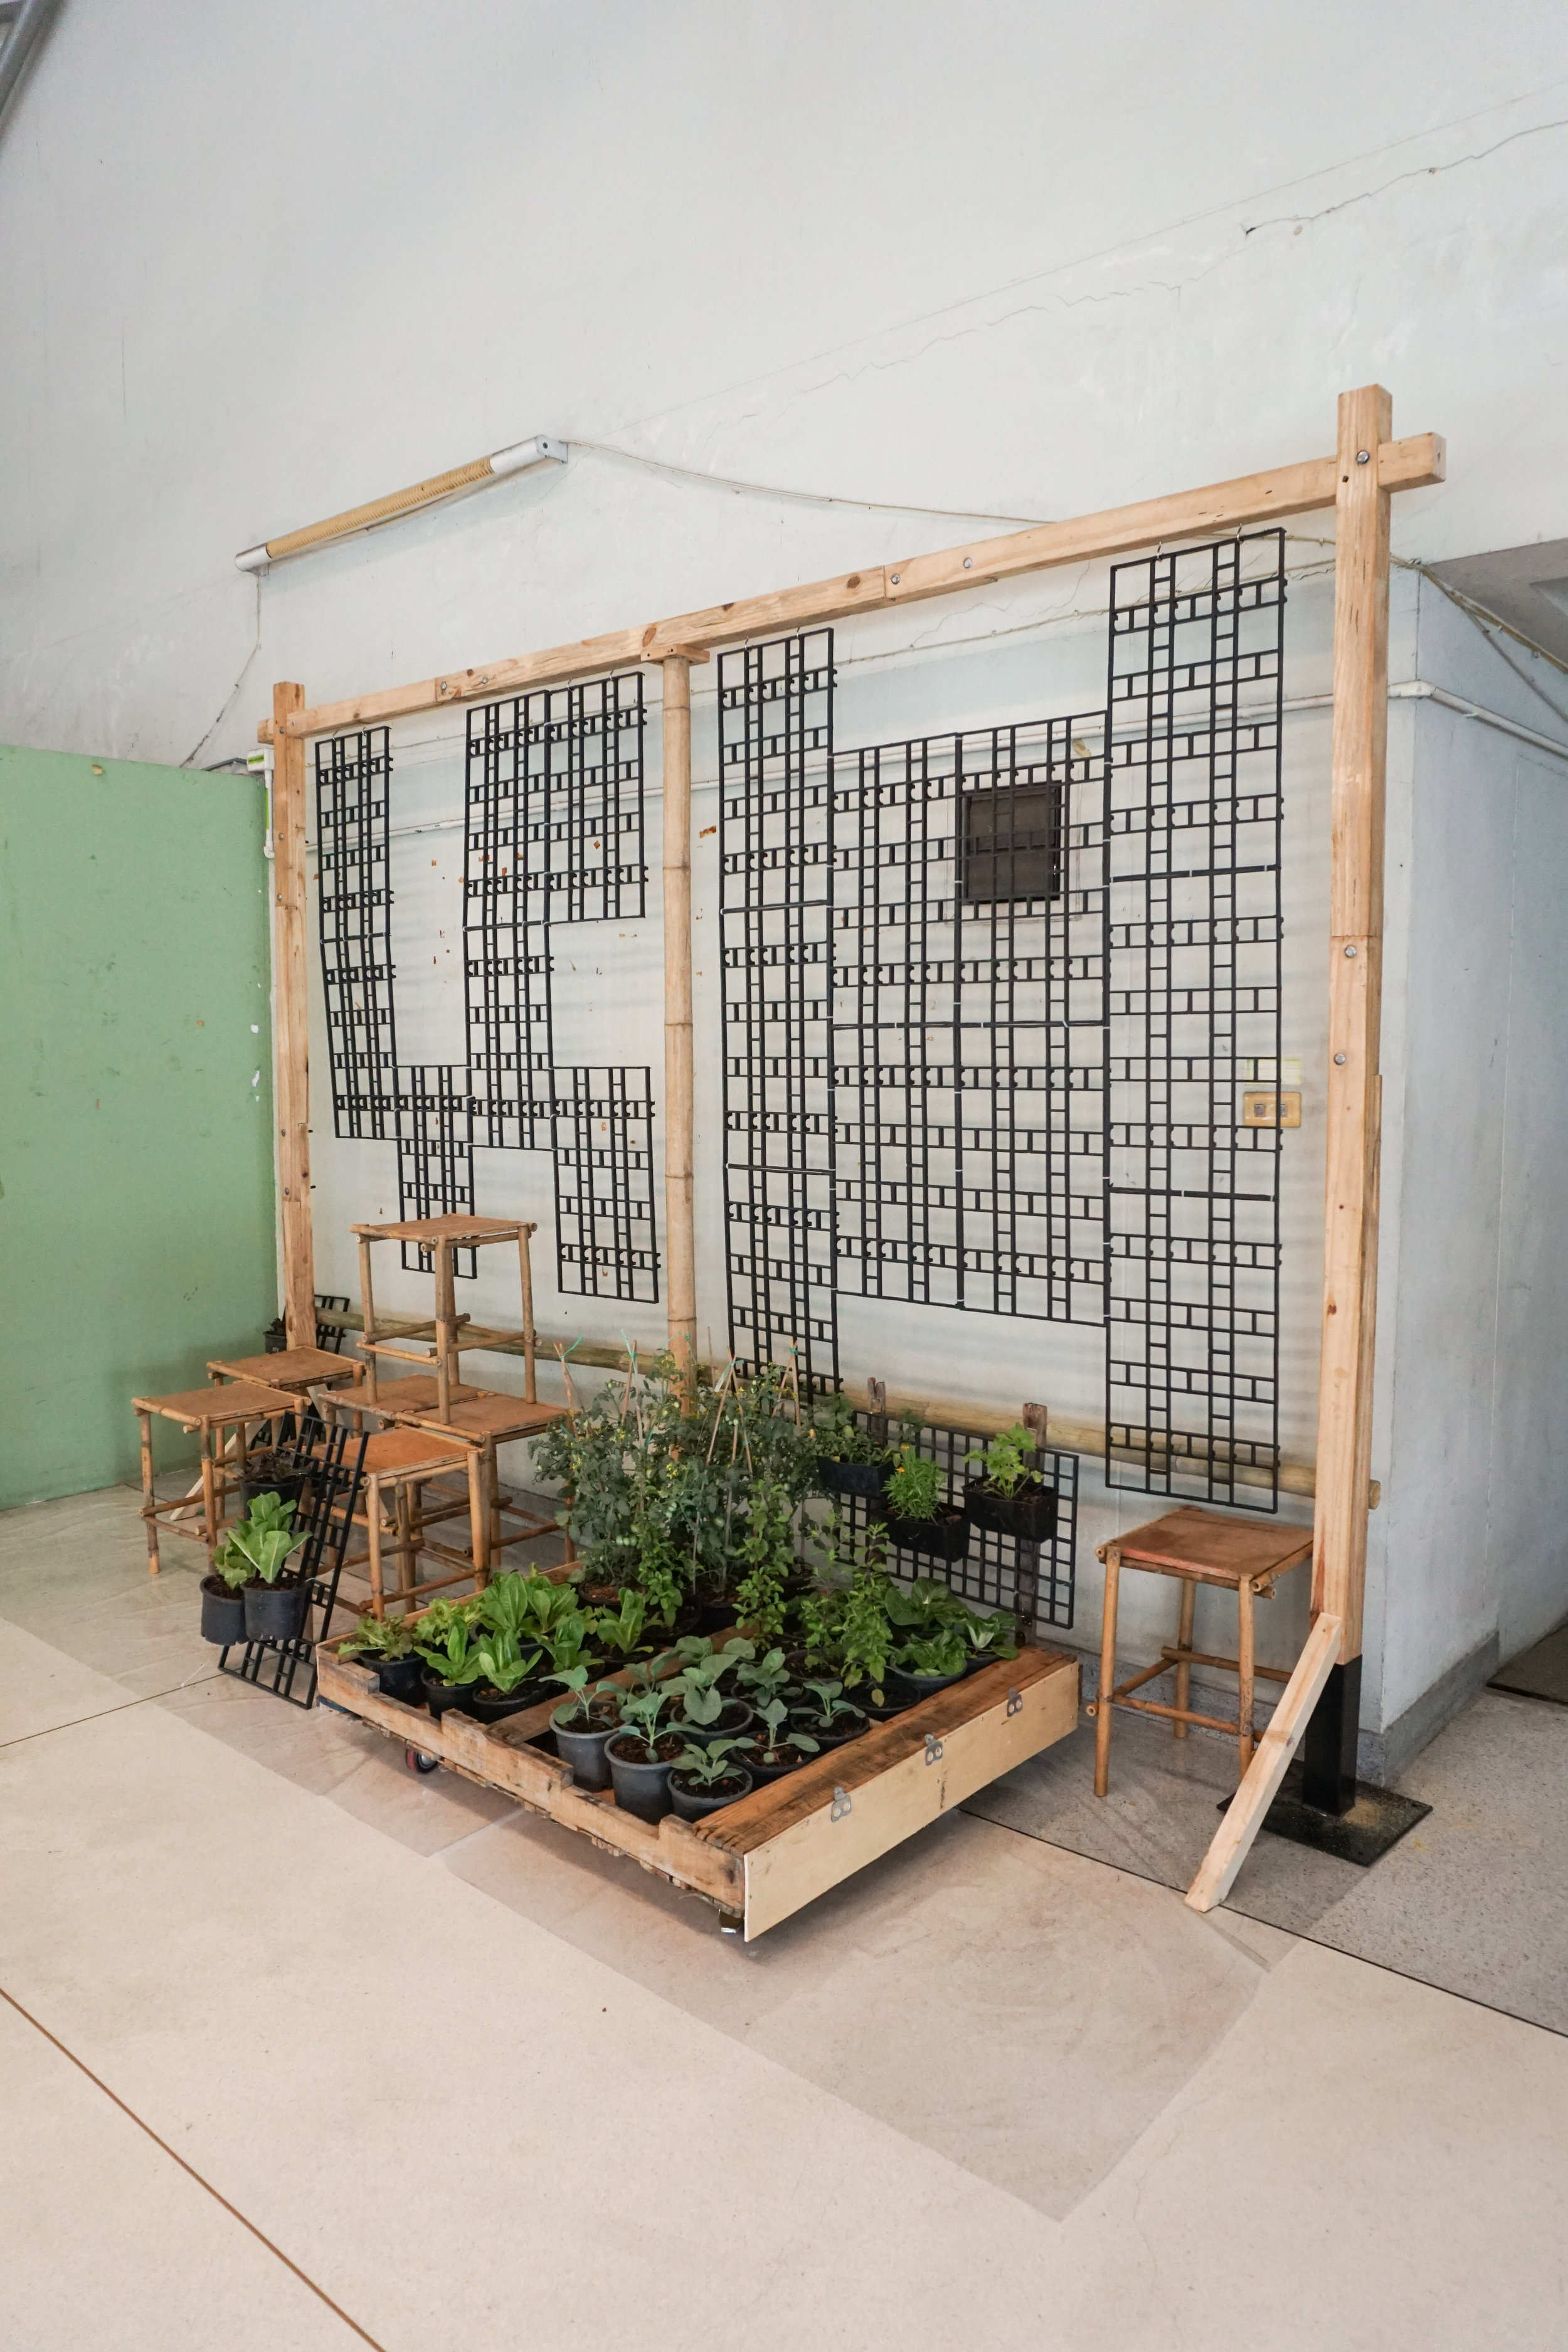 City Farming for a Sustainable City Event: Building the photo corner with the vertical garden